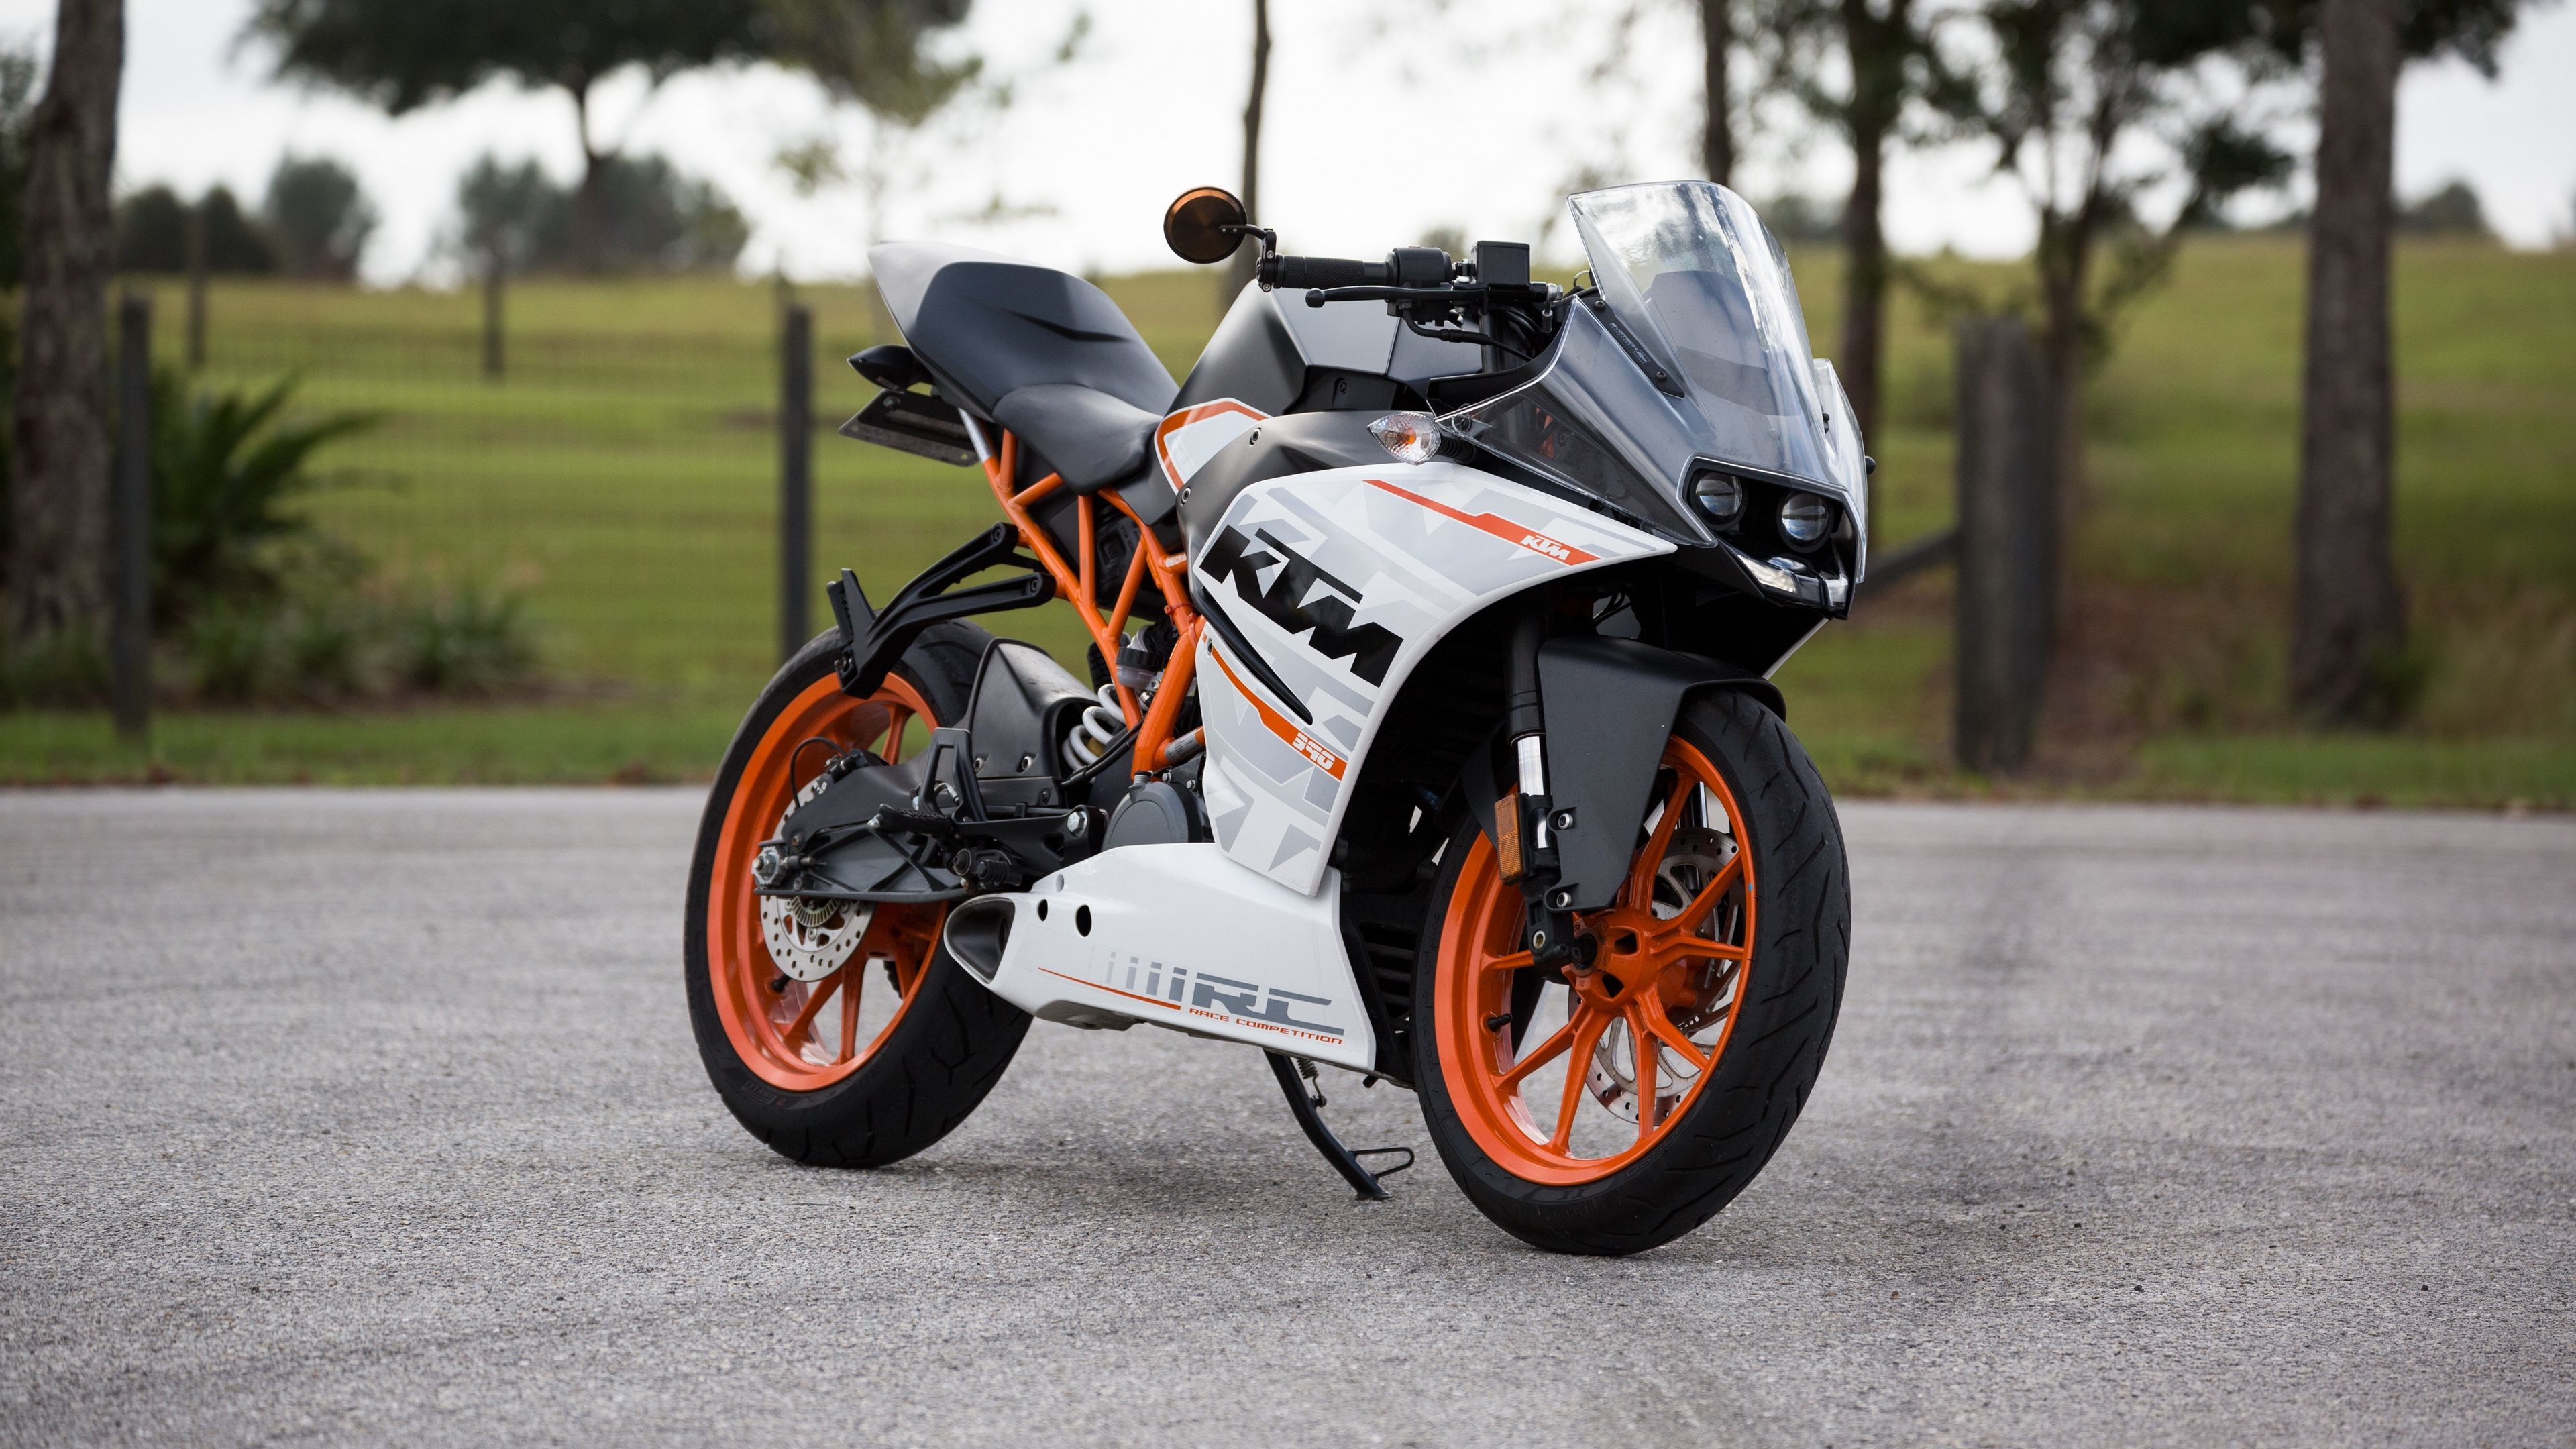 Wallpaper 4k Ktm Motorcycle Side View 4k Ktm Motorcycle Side View Ktm Rc Ktm Motorcycle Wallpaper